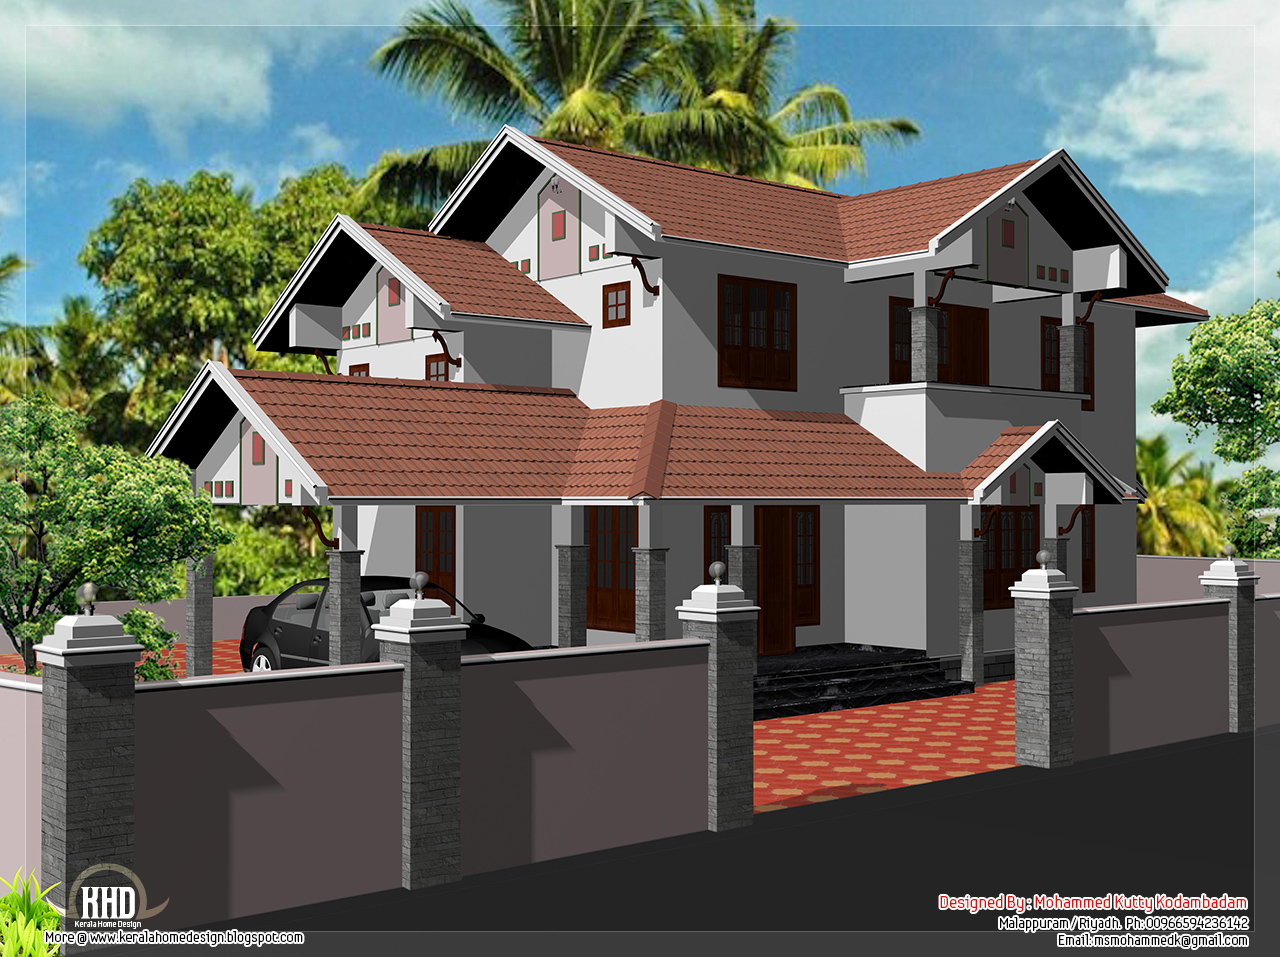 2000 house elevation design house design plans for Contemporary house plans under 2000 sq ft